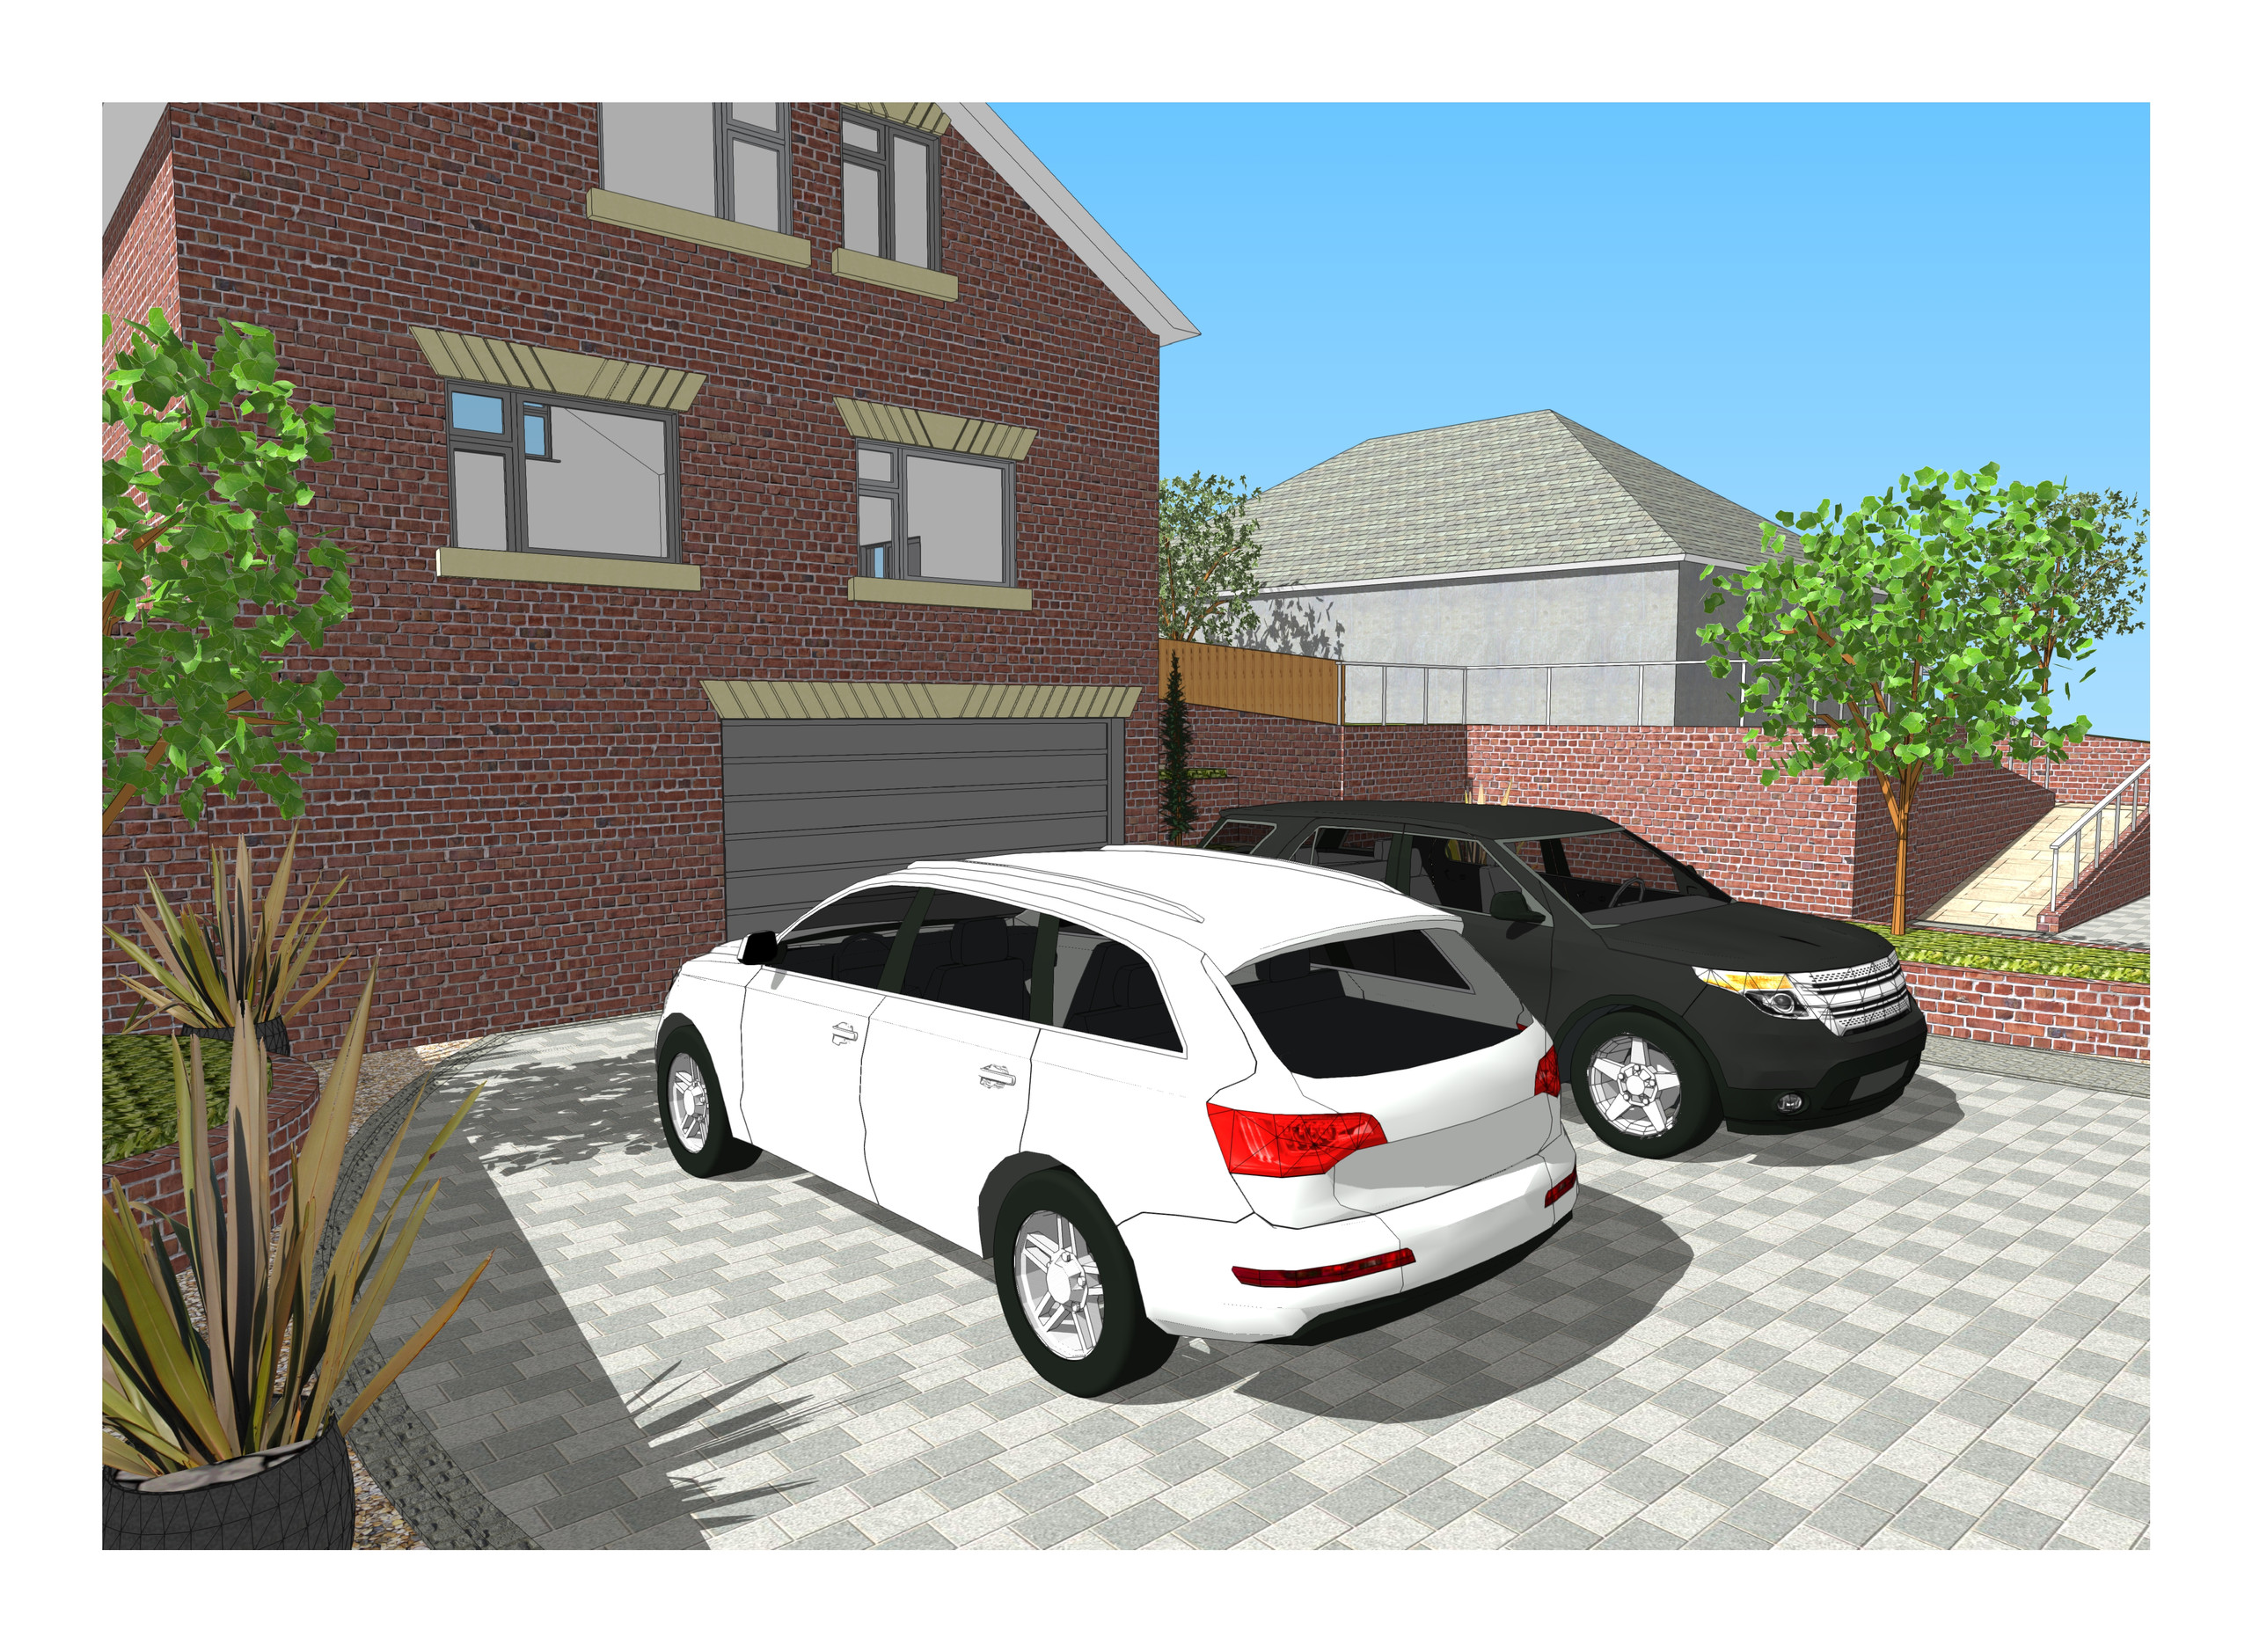 3. 3D images for a new build property in Uton West Yorkshire. Garden designer in Wakefield